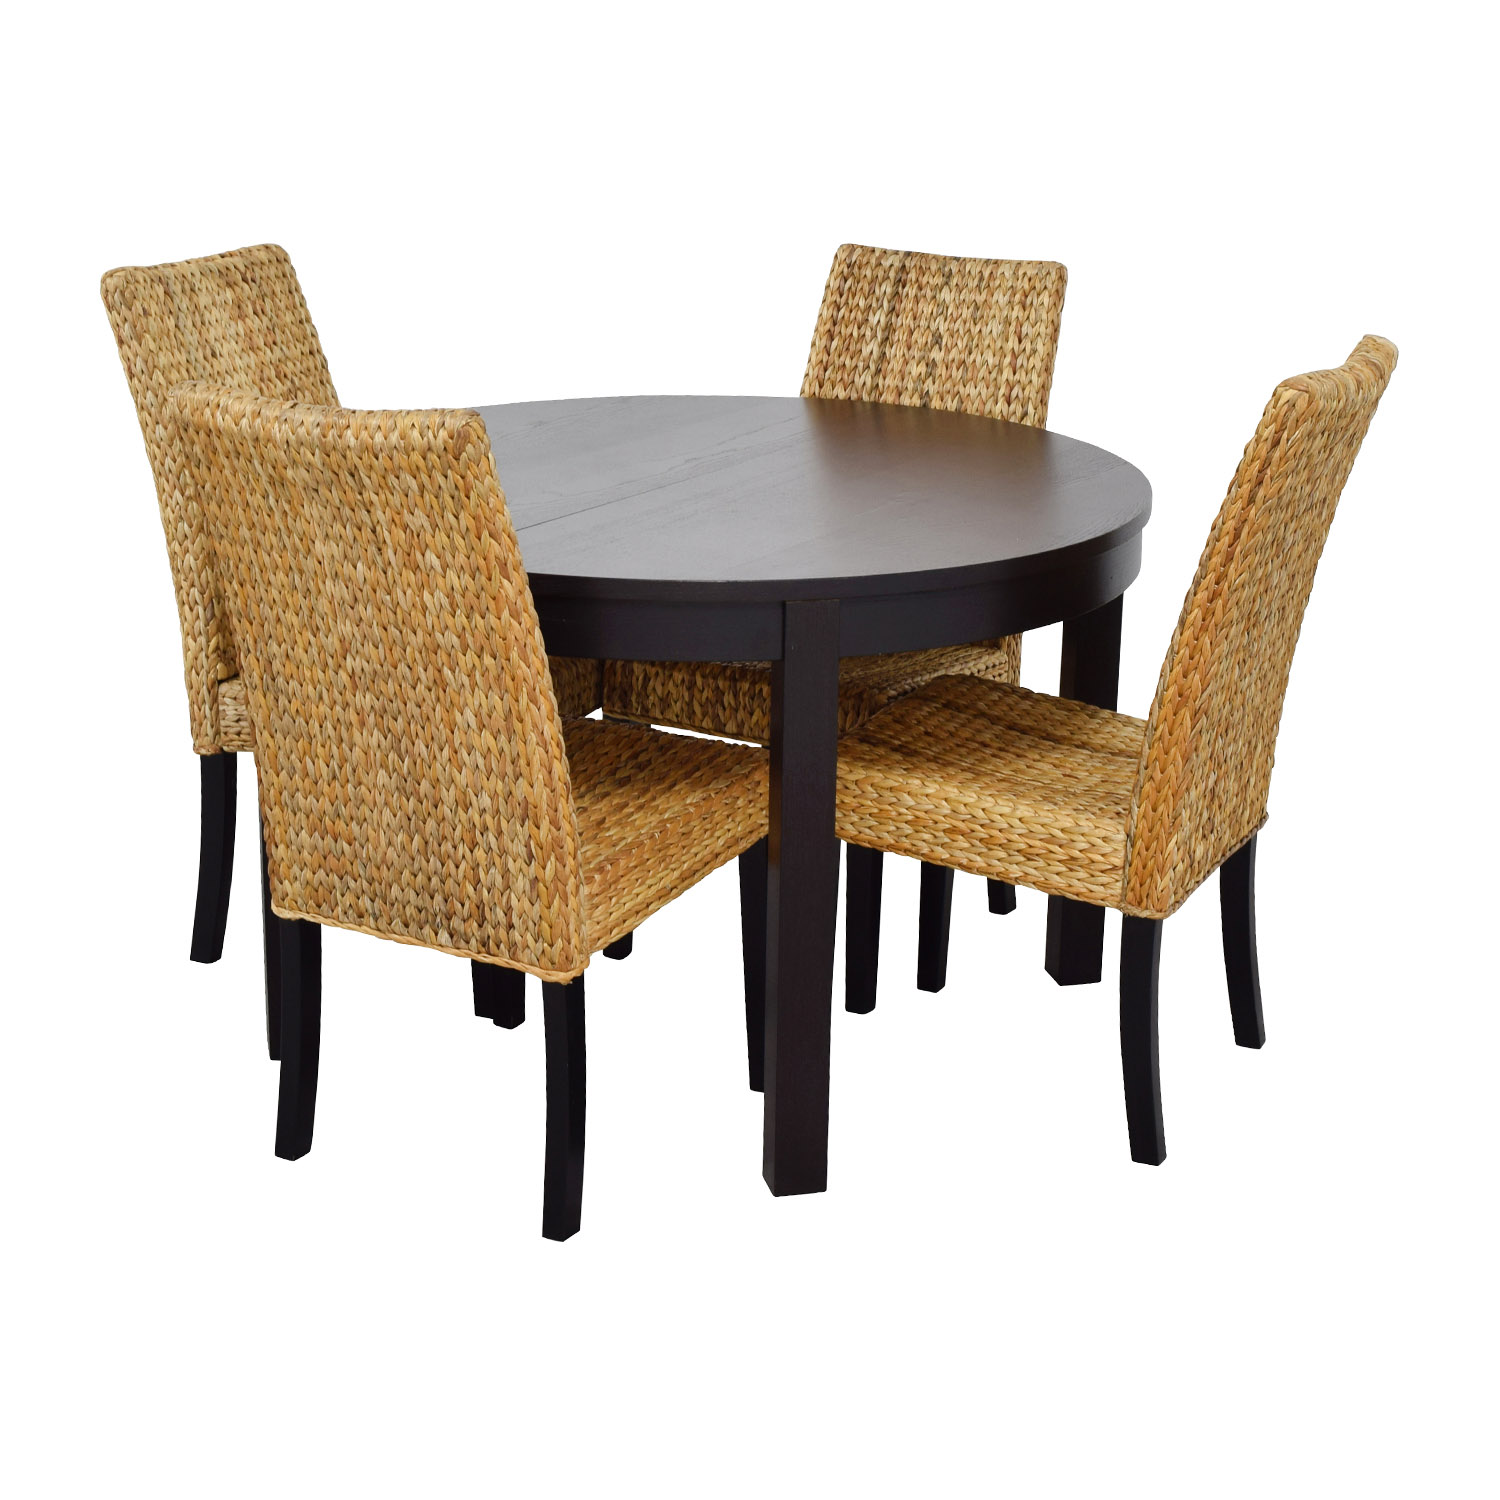 Ikea Round Table And Chairs: Macy's & IKEA Round Black Dining Table Set With